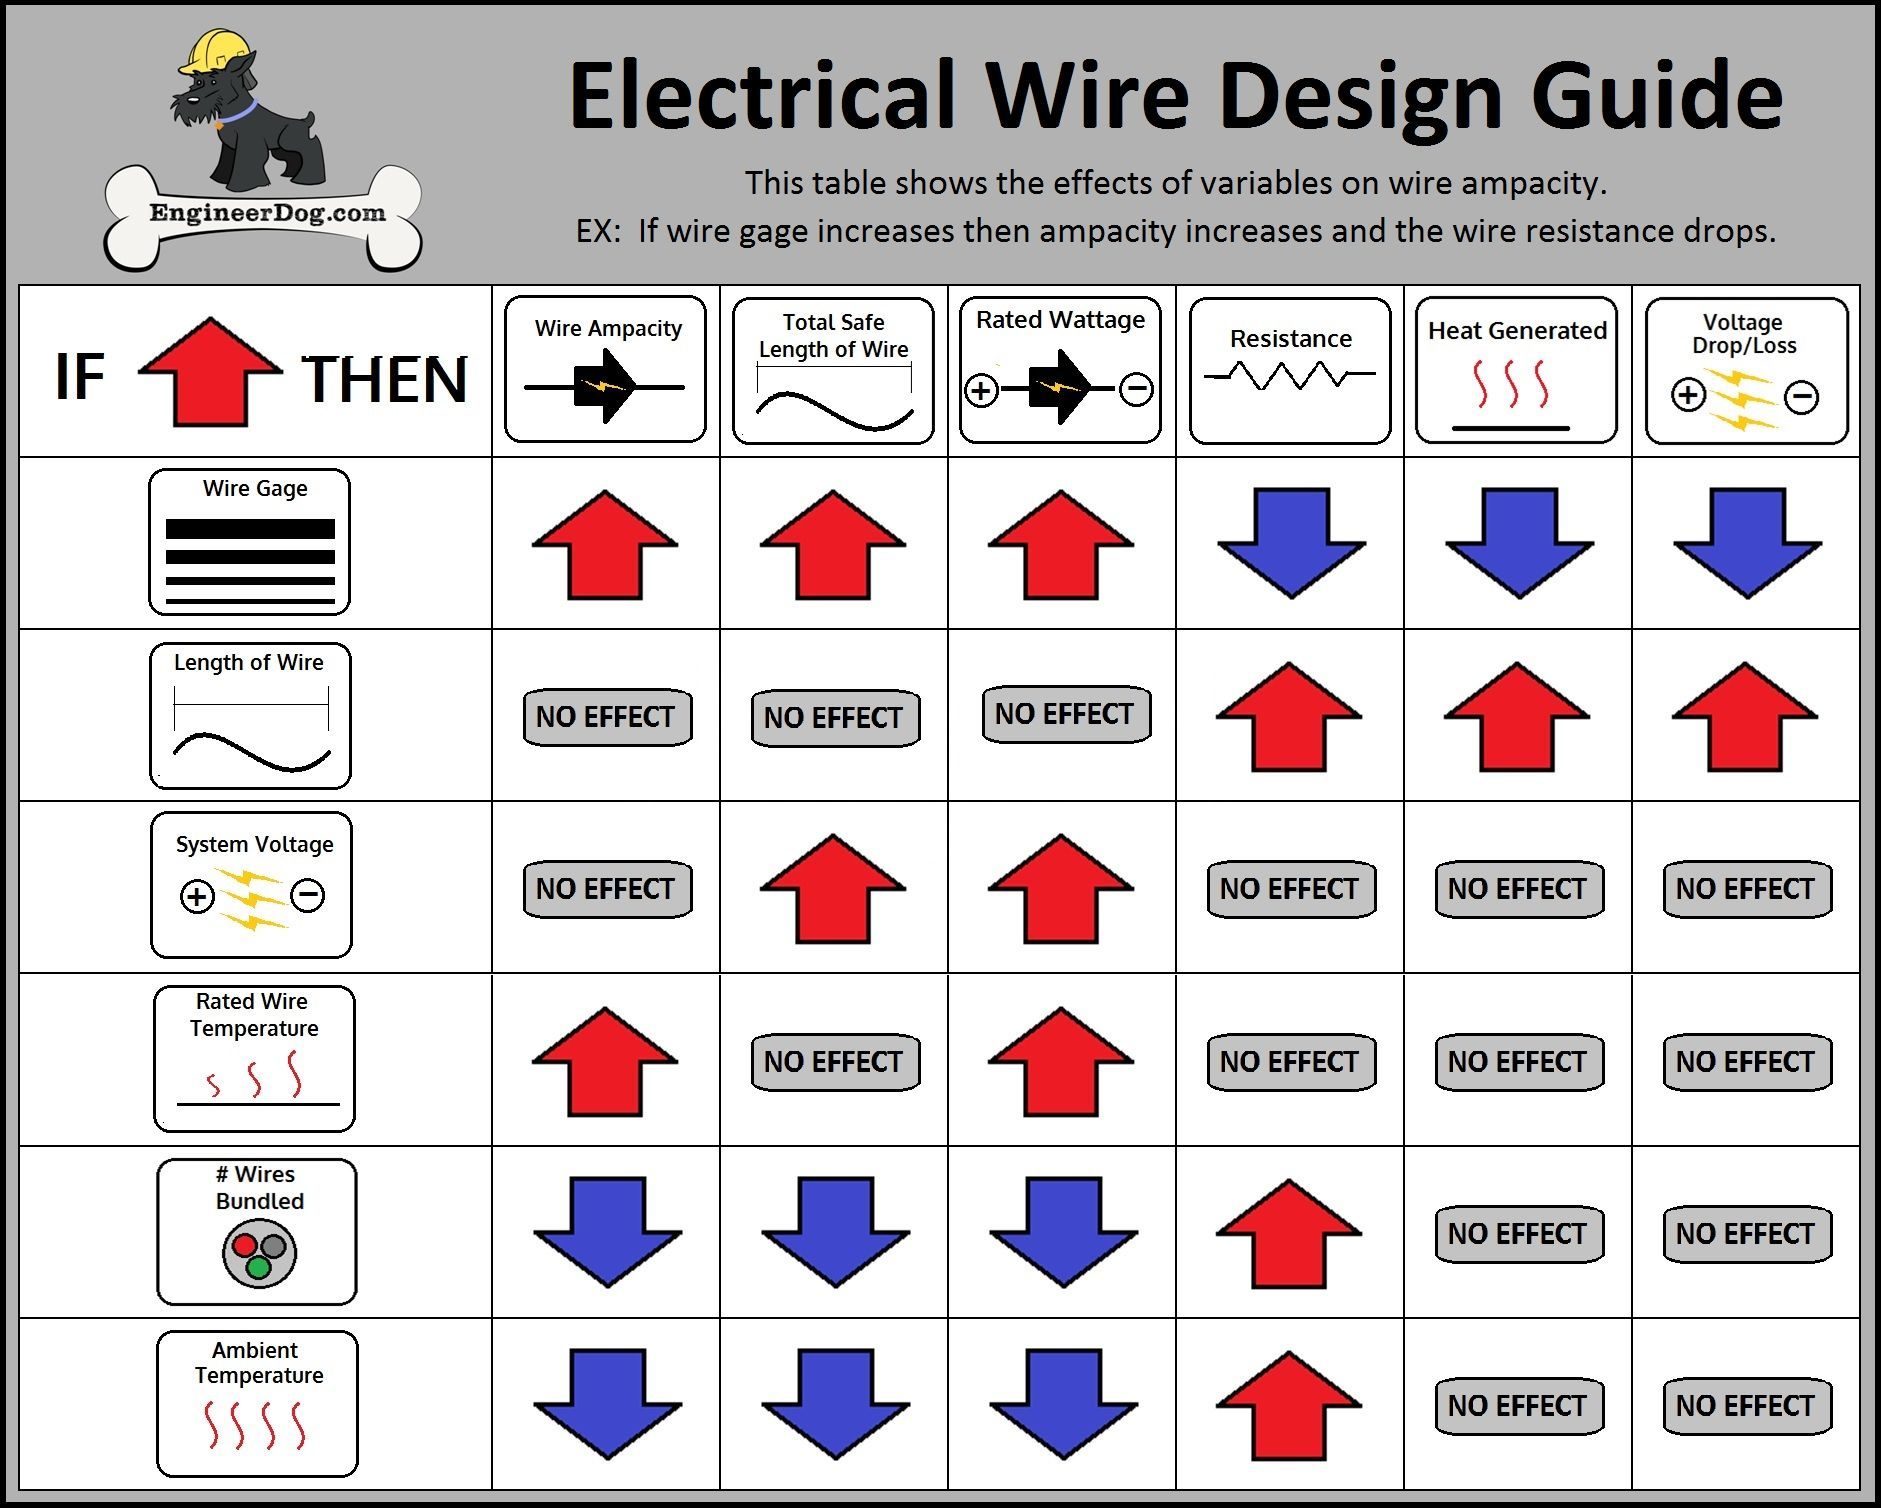 Electrical wire design guide see website for free wire gauge electrical wire design guide see website for free wire gauge calculator guide greentooth Images